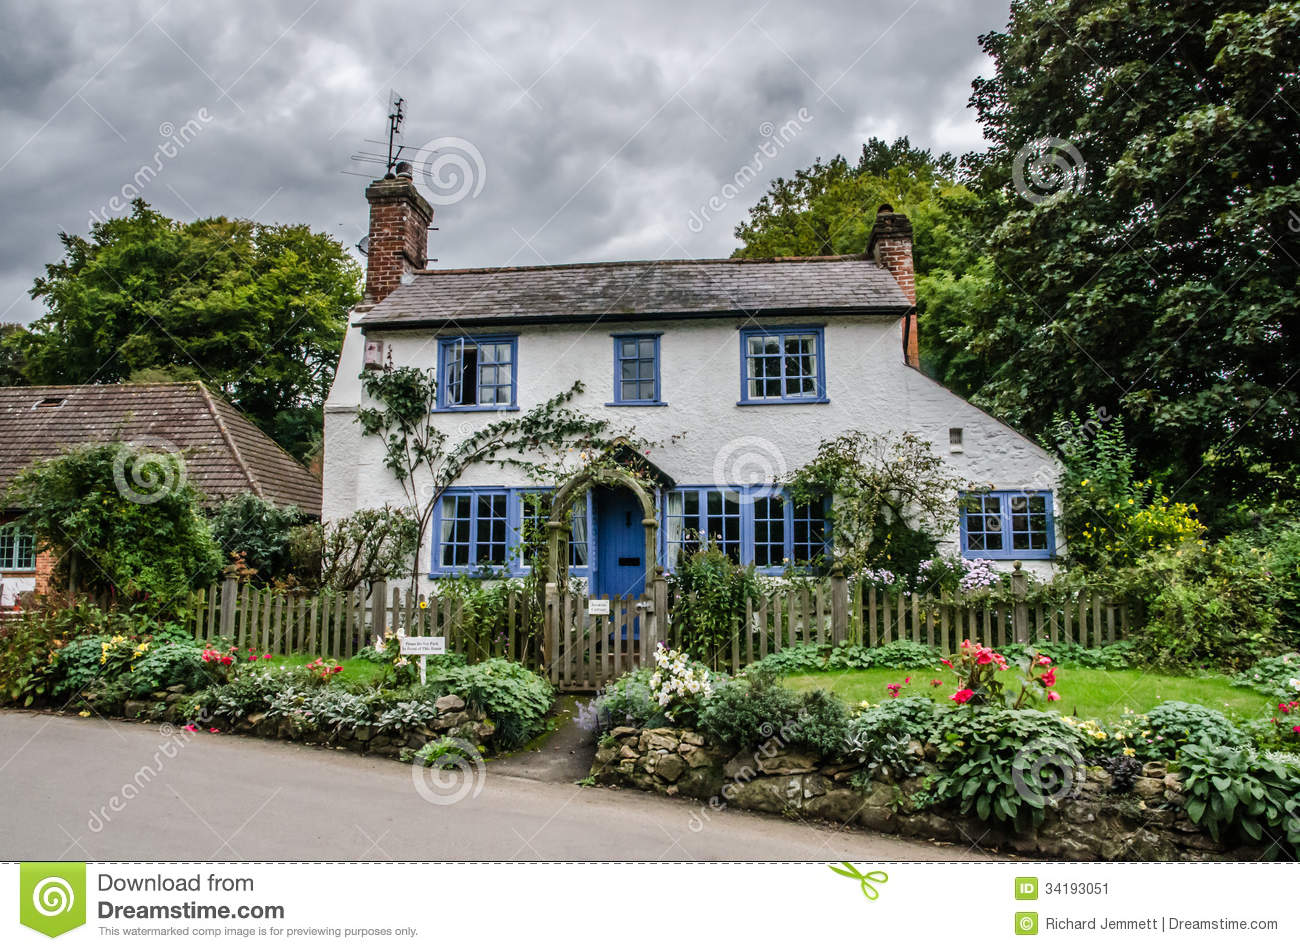 Blue and white traditional english cottage stock image for Cottage anglais